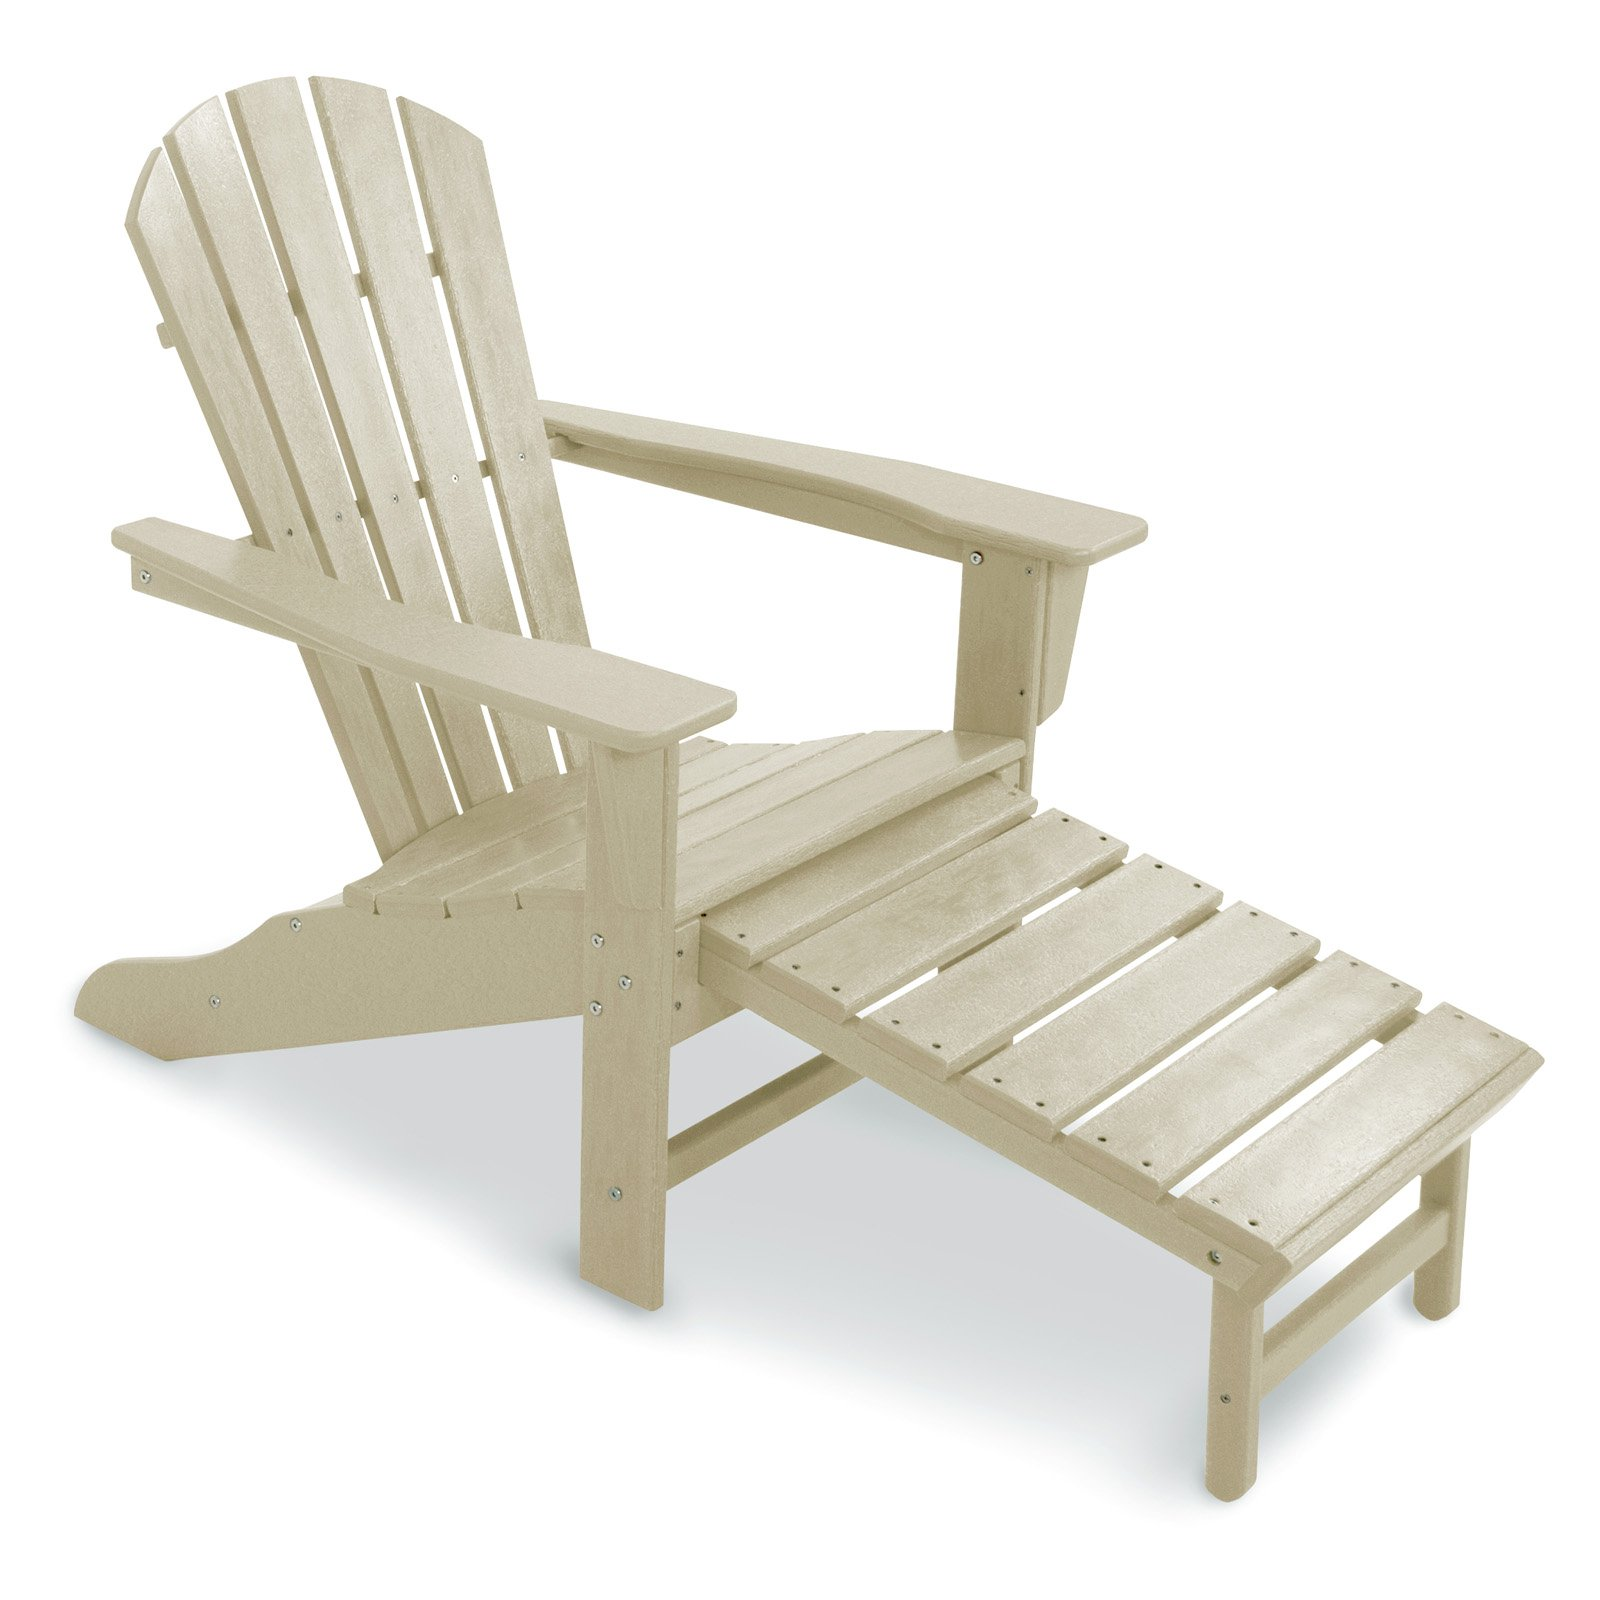 POLYWOOD Recycled Plastic Big Daddy Adirondack Chair with Pull-out Ottoman by Poly-Wood